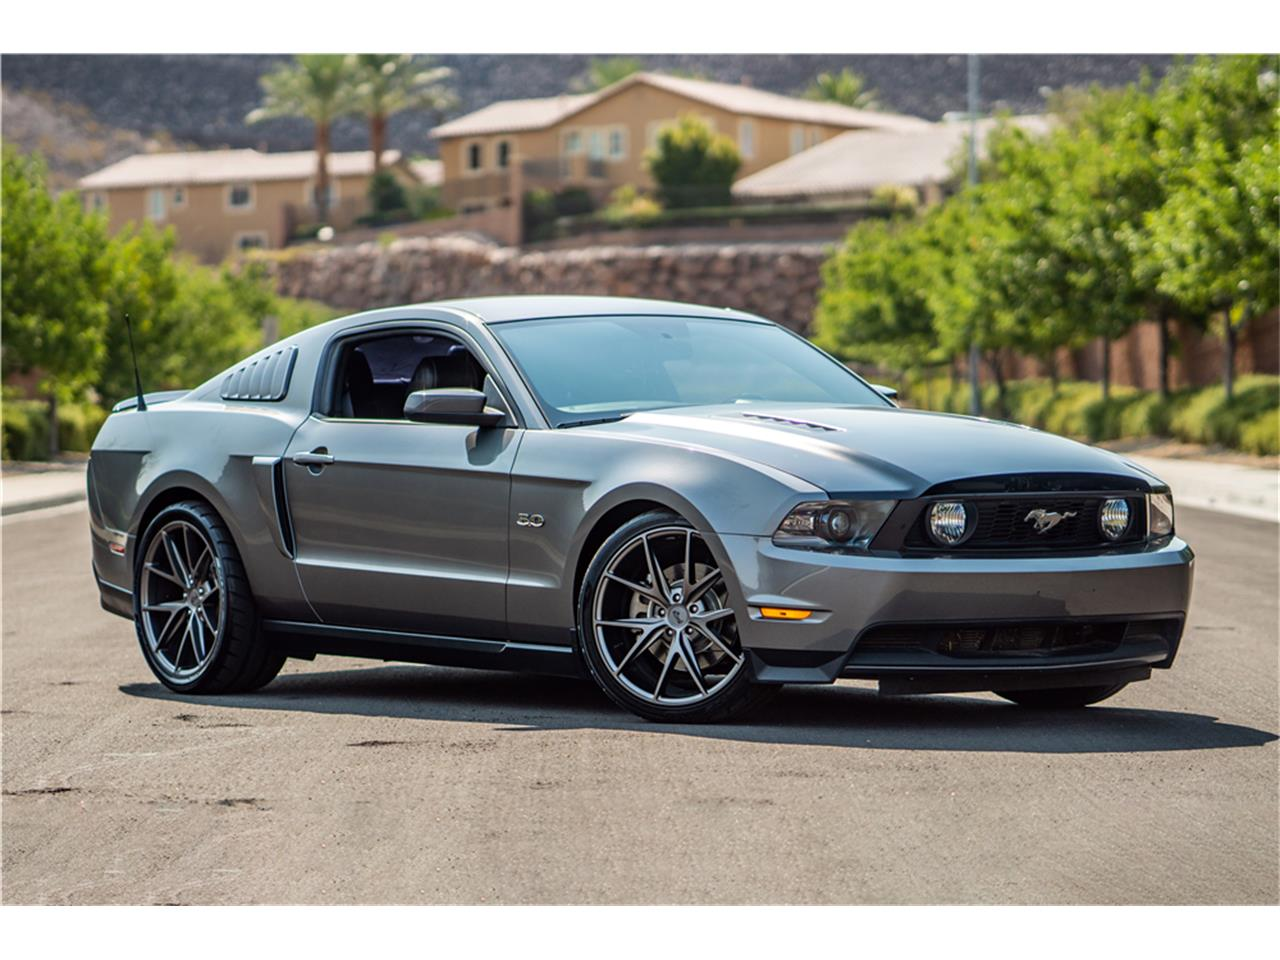 2012 Ford Mustang Gt For Sale Classiccars Com Cc 1171757